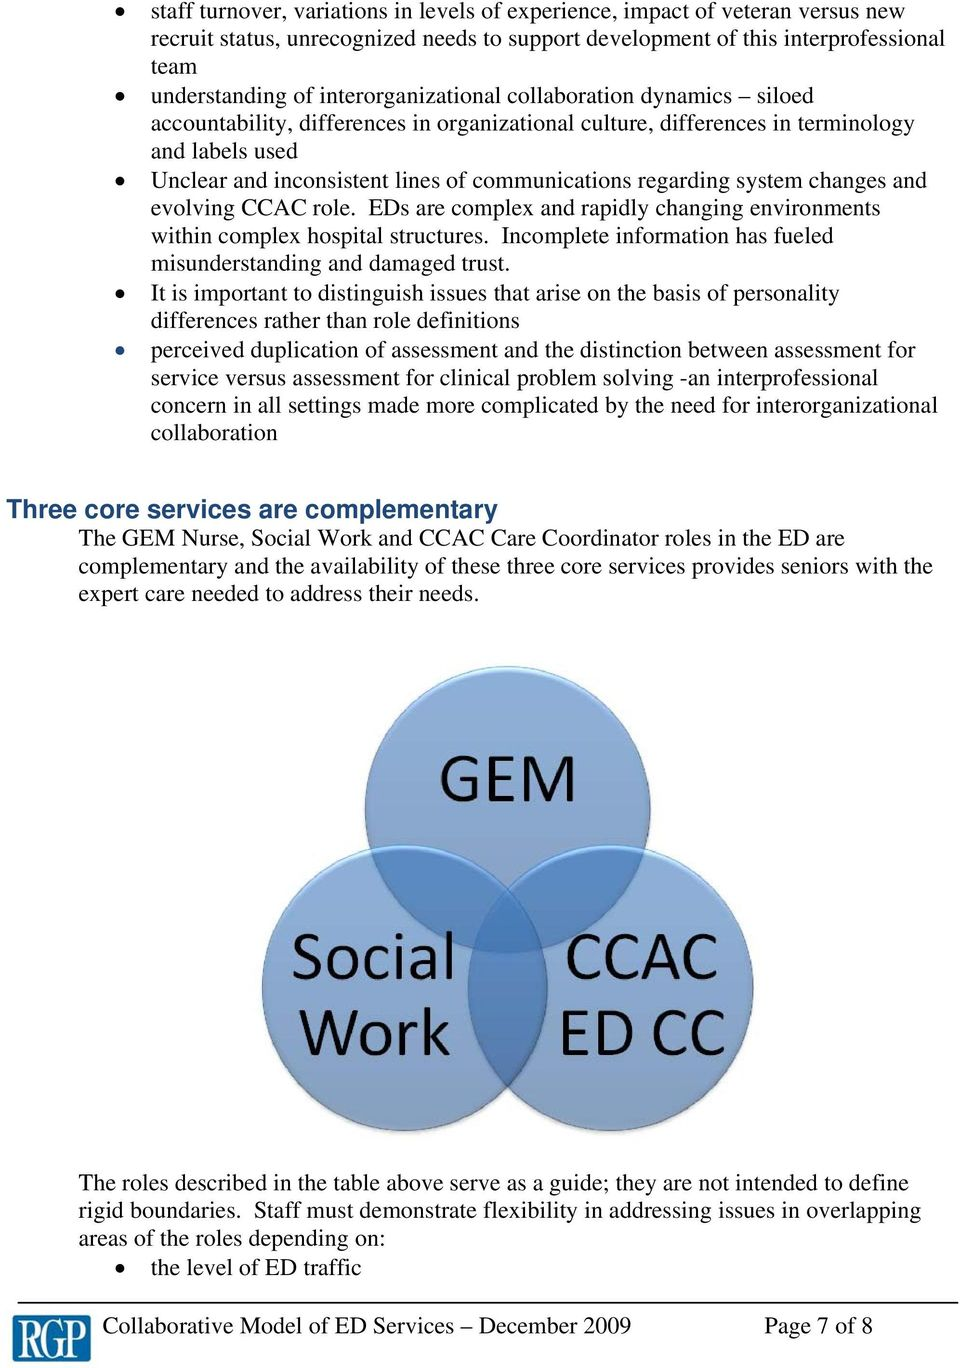 regarding system changes and evolving CCAC role. EDs are complex and rapidly changing environments within complex hospital structures.